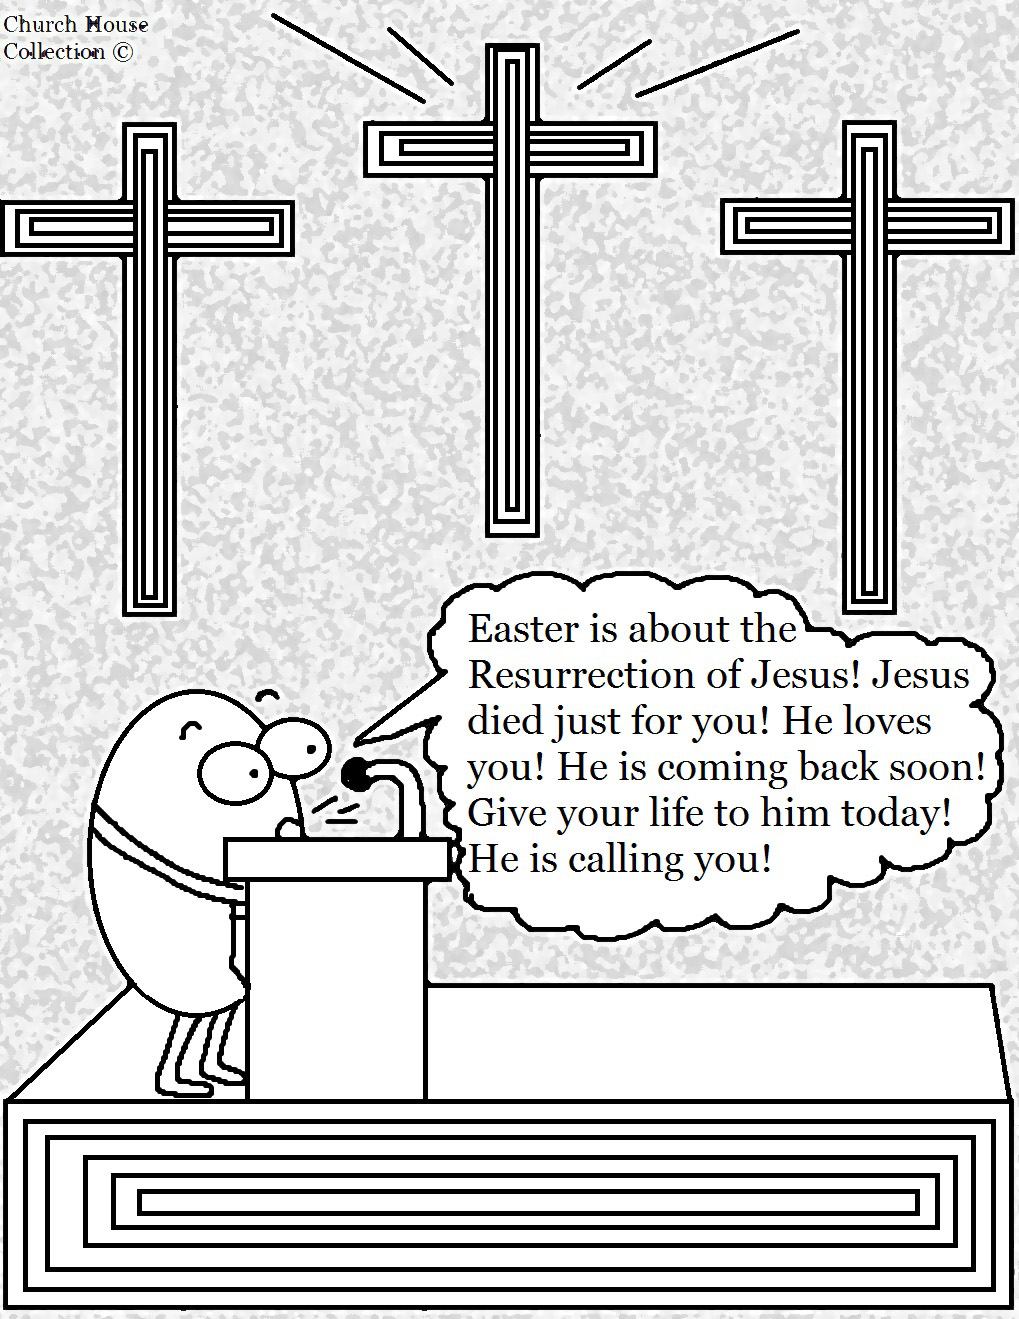 Church House Collection Easter Coloring Page Egg Preacher